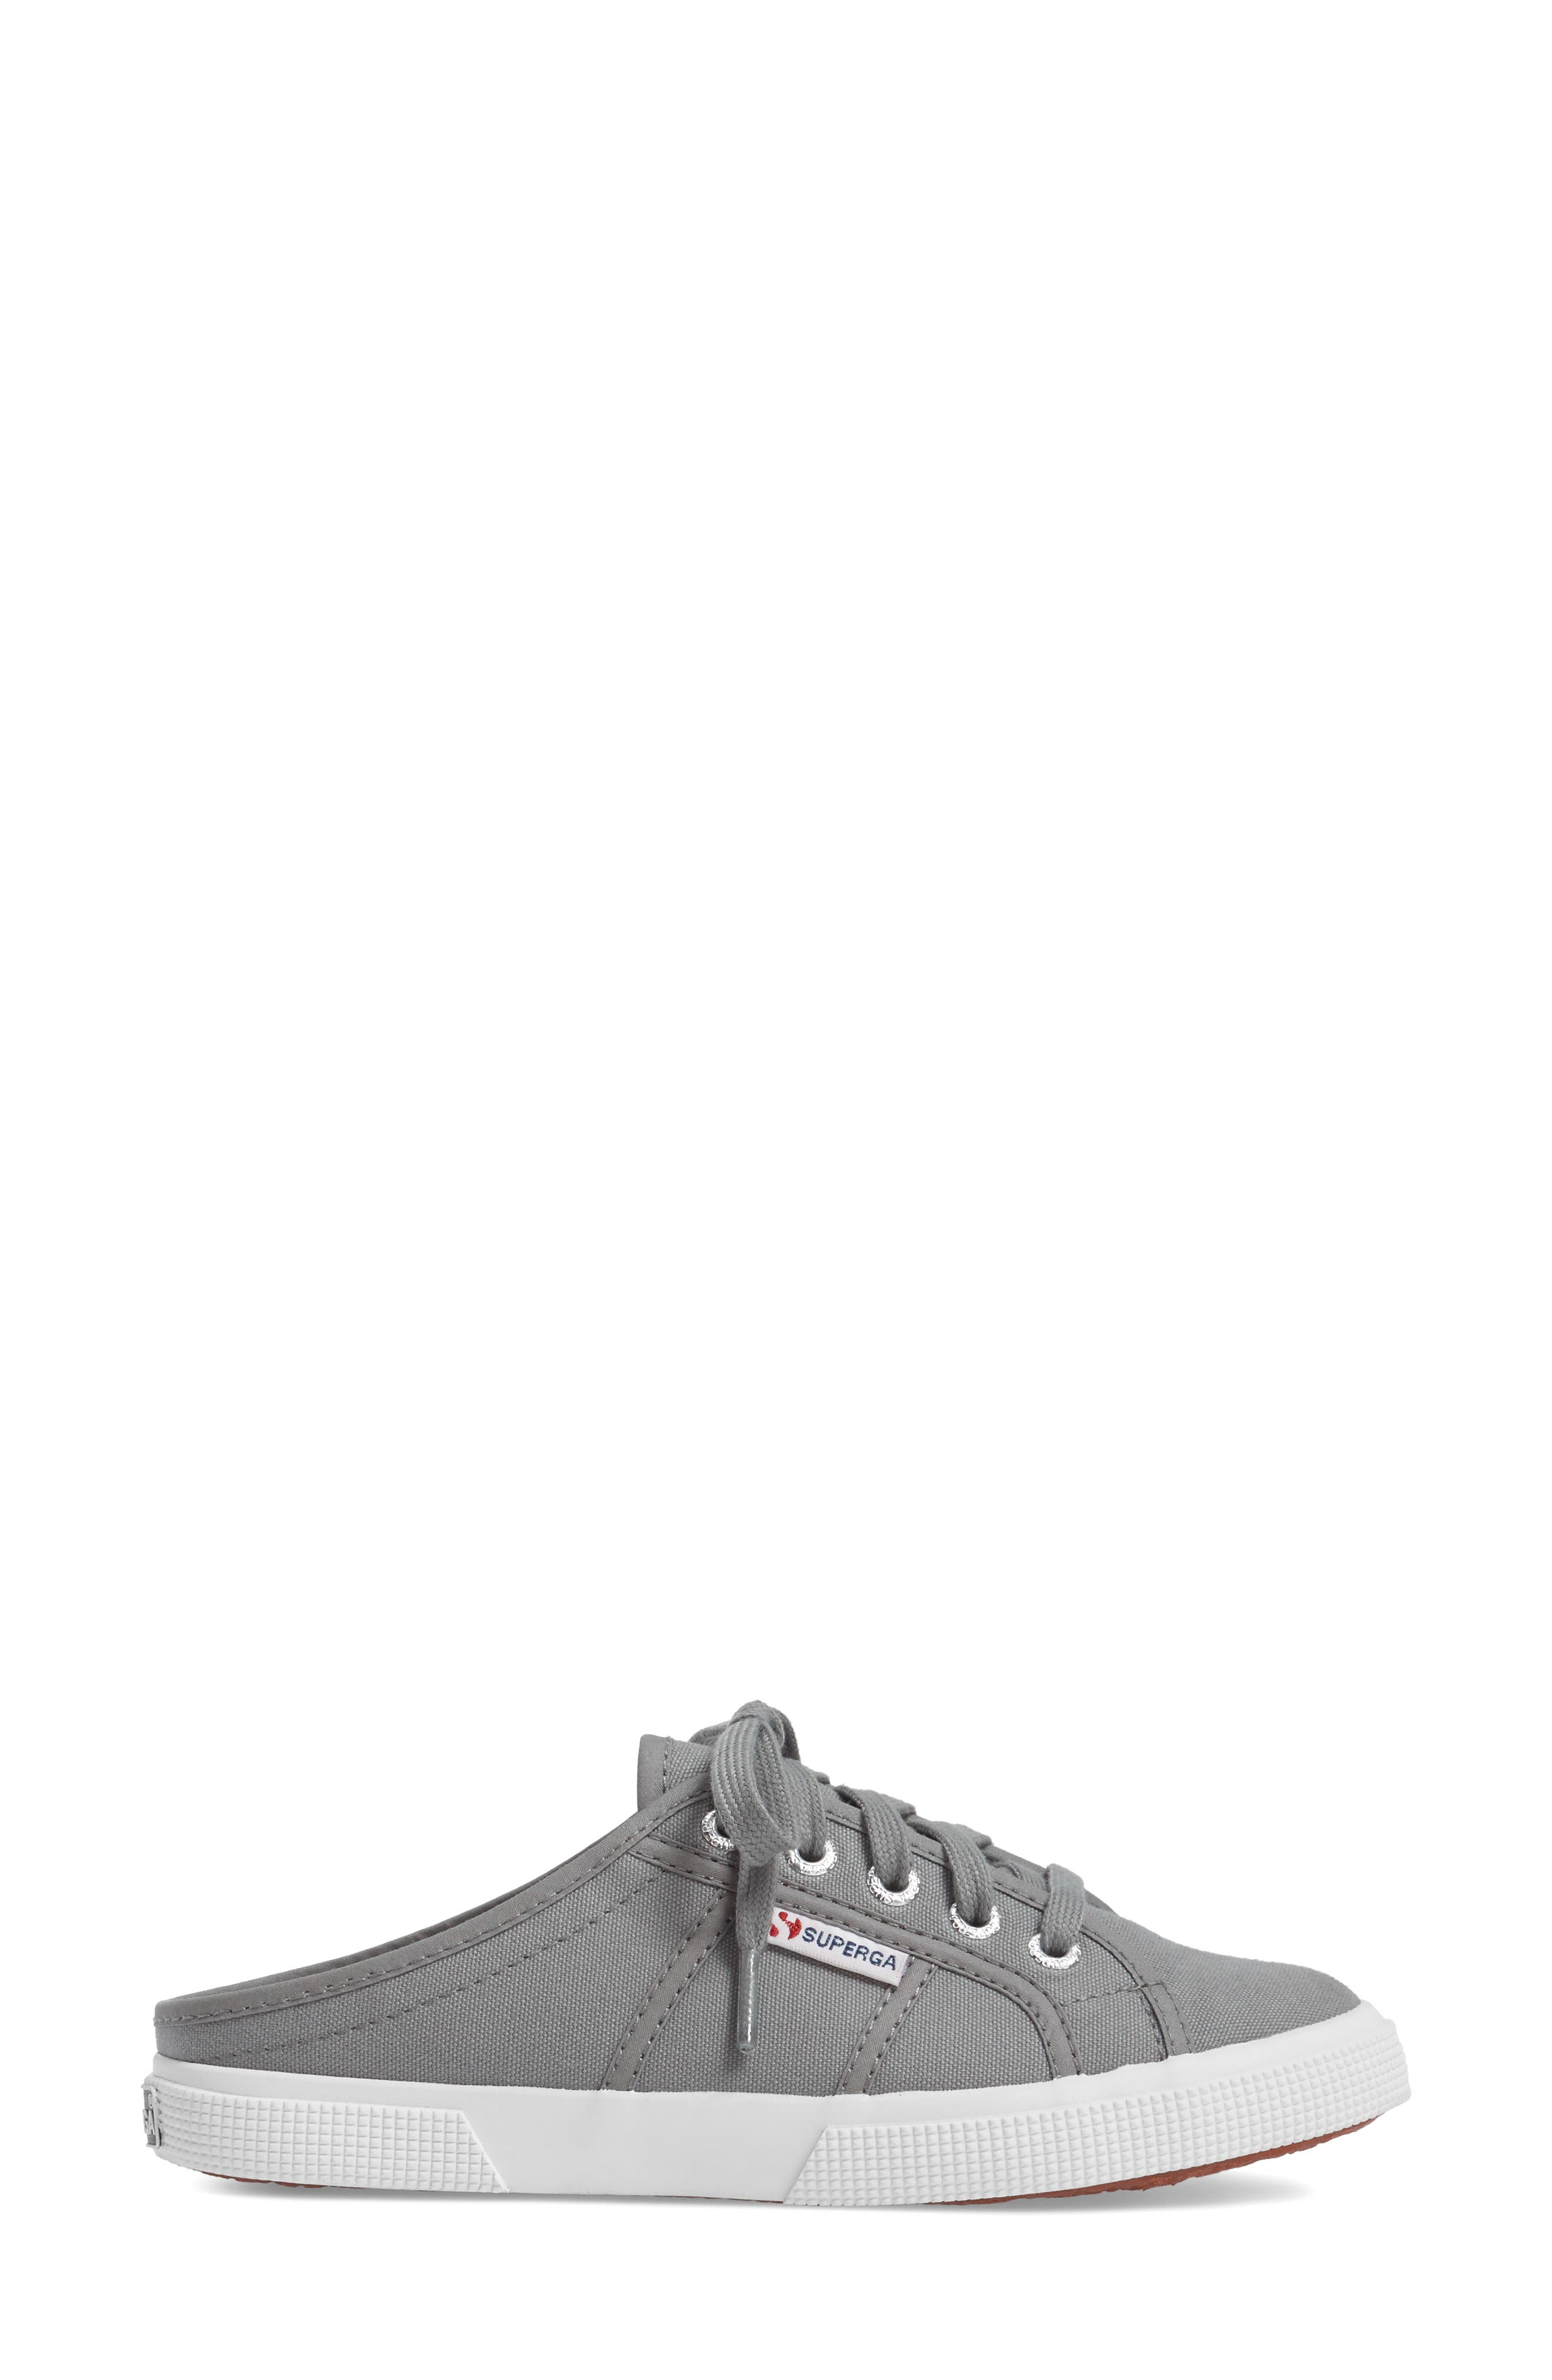 2288 Sneaker Mule,                             Alternate thumbnail 9, color,